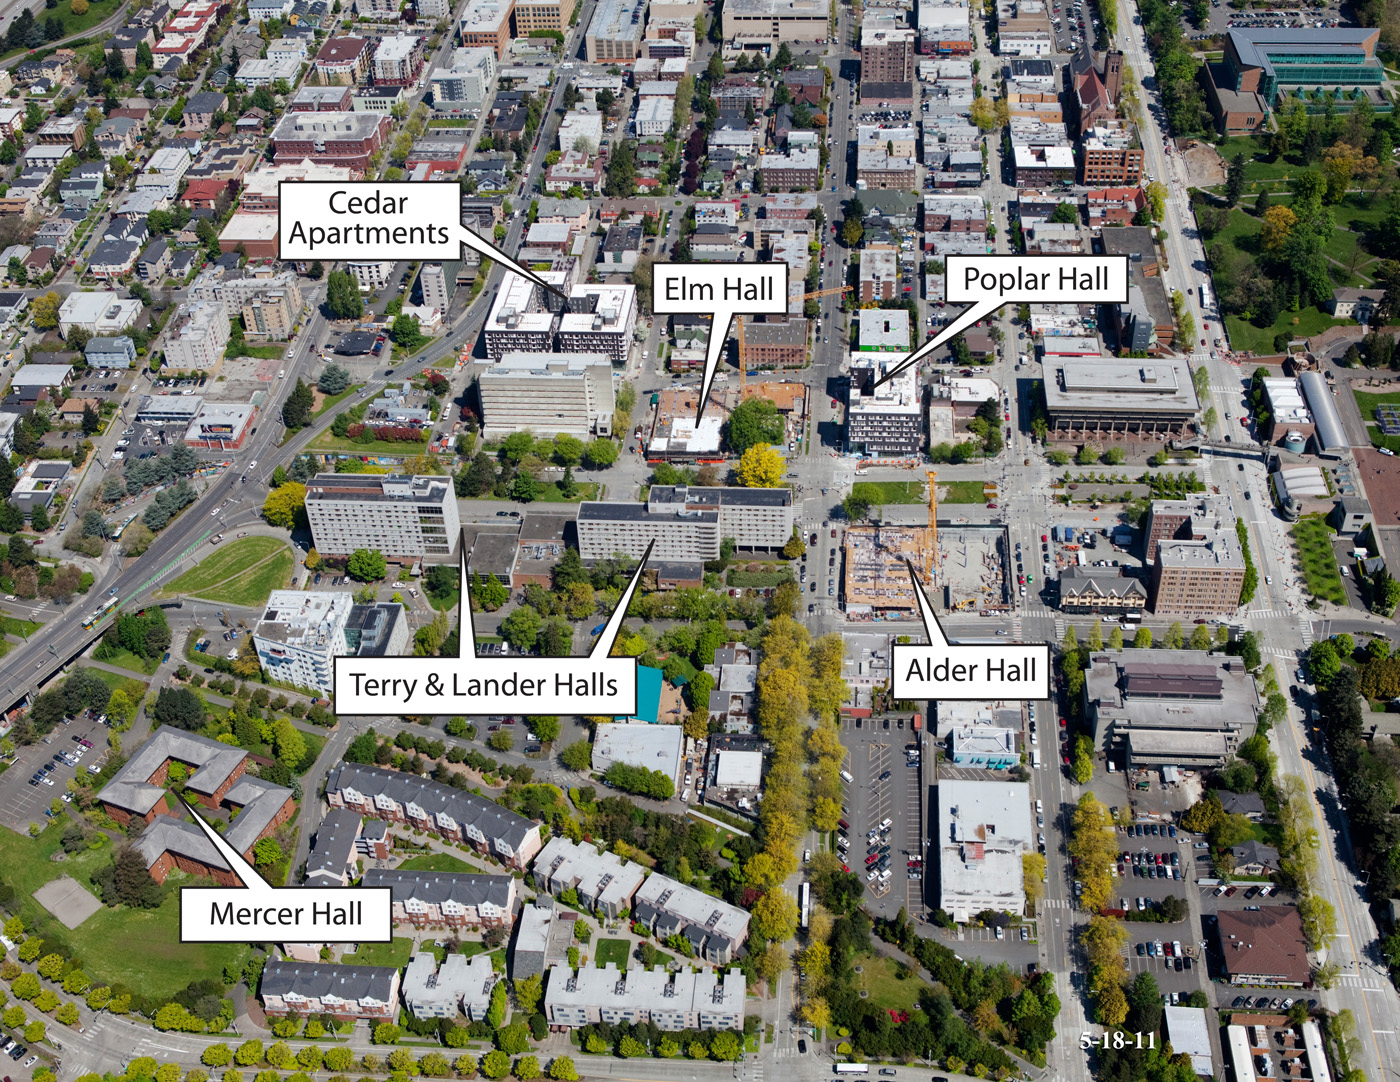 Seattle Djc Com Local Business News And Data Construction Uw Will Finish Two New Student